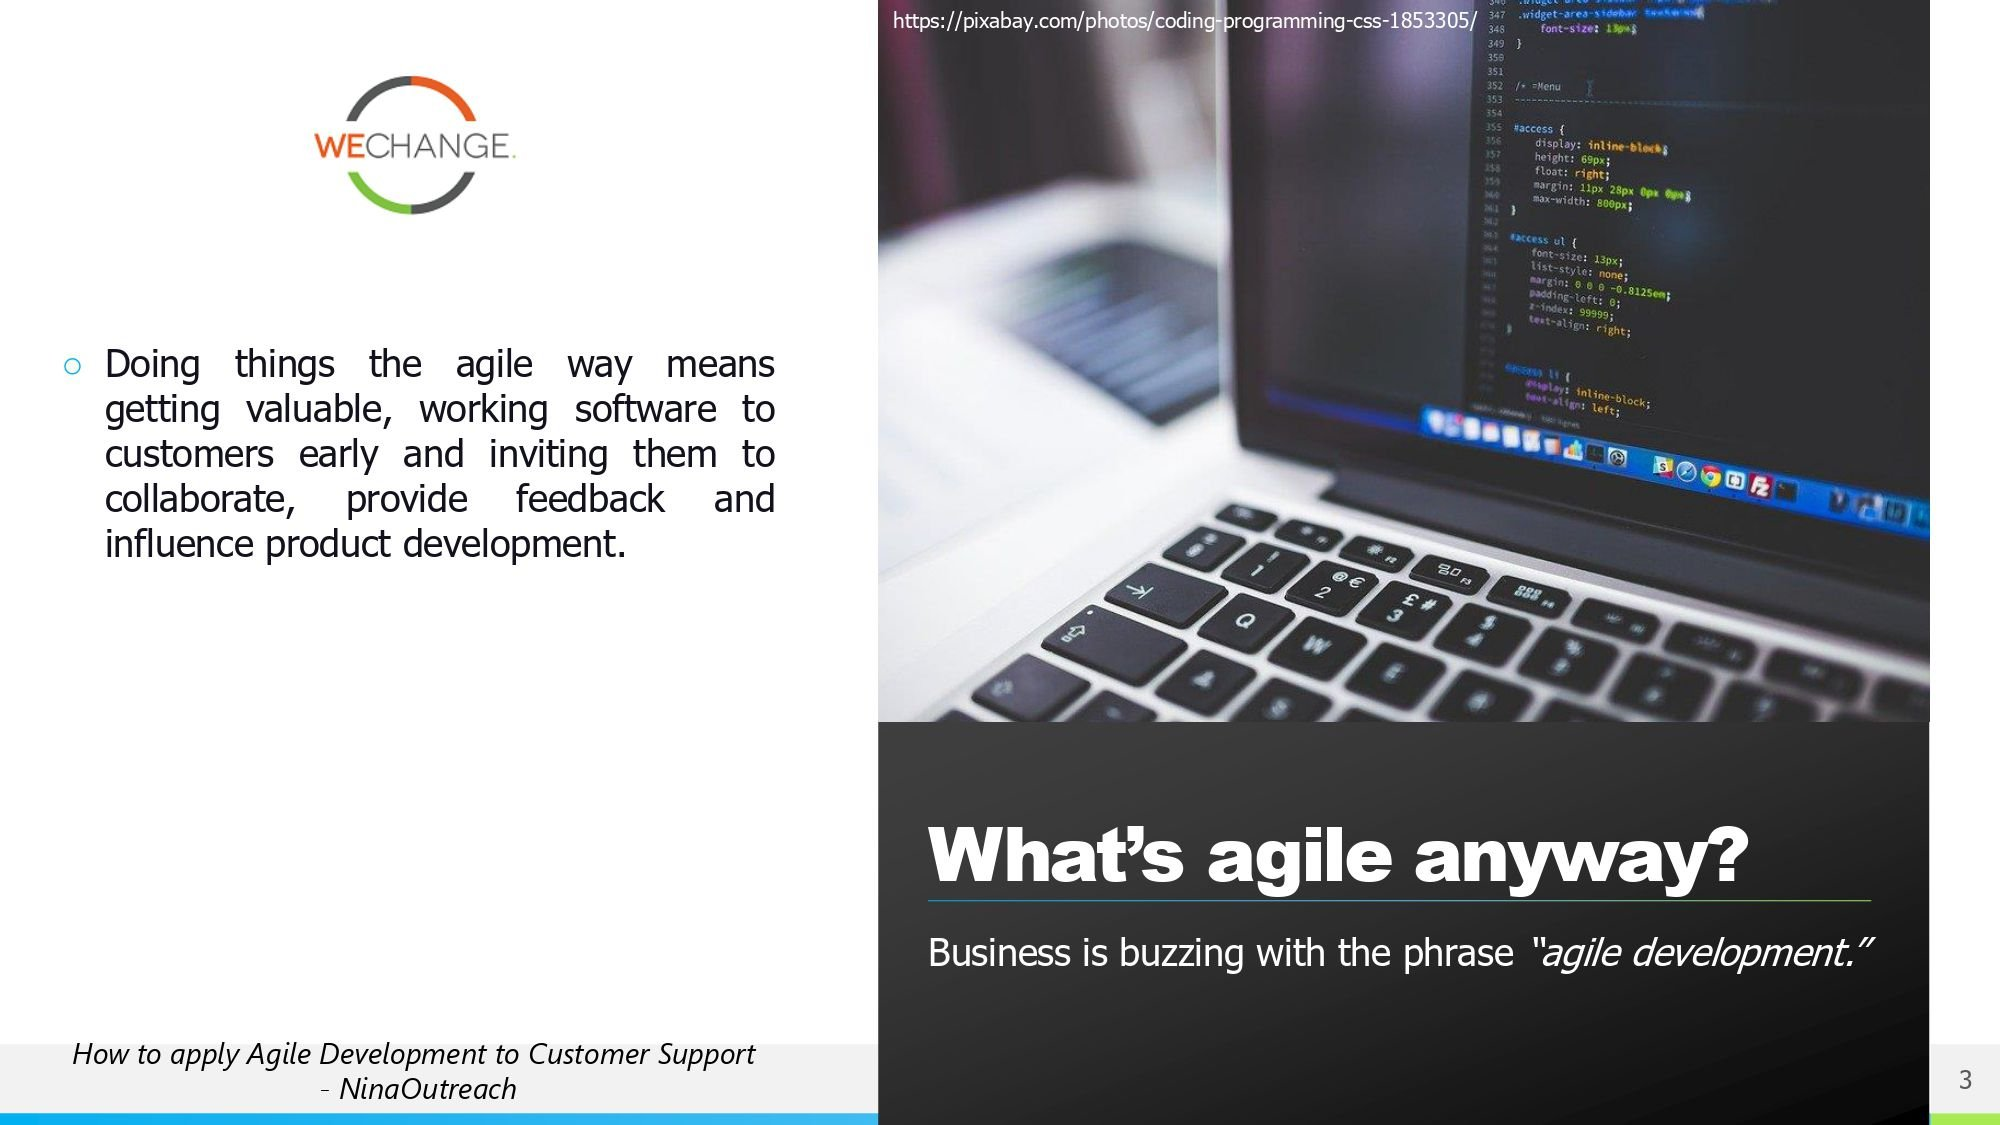 Operations agility page 0003 compressed Being & Doing Agile in Customer oriented care and Operations Organizations